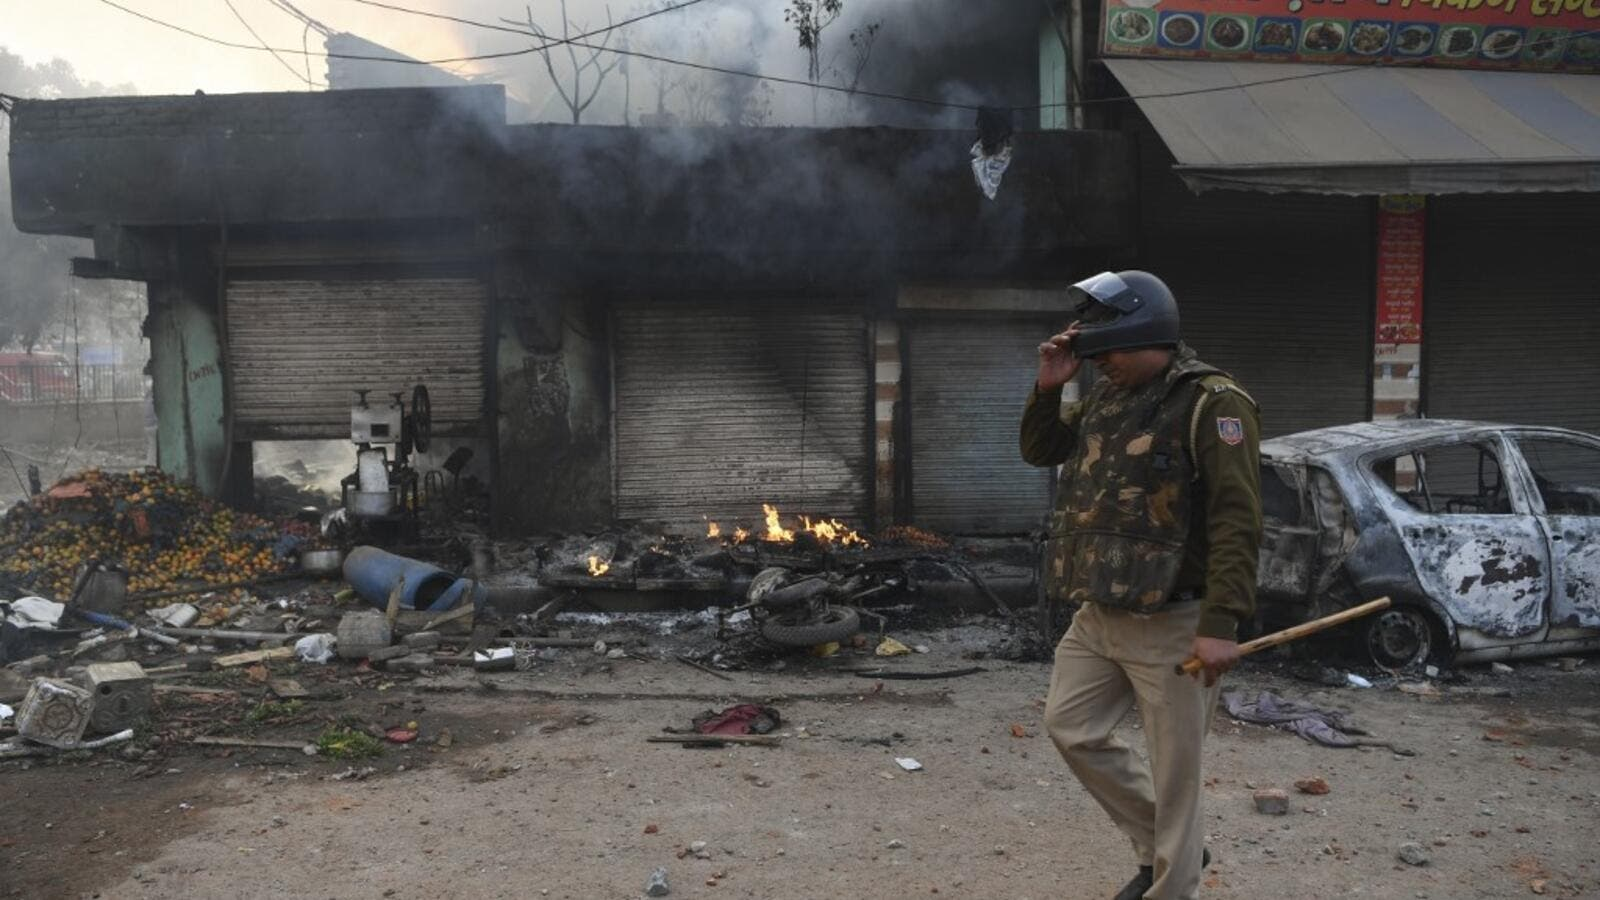 Seven killed, around 150 injured in Indian protest violence